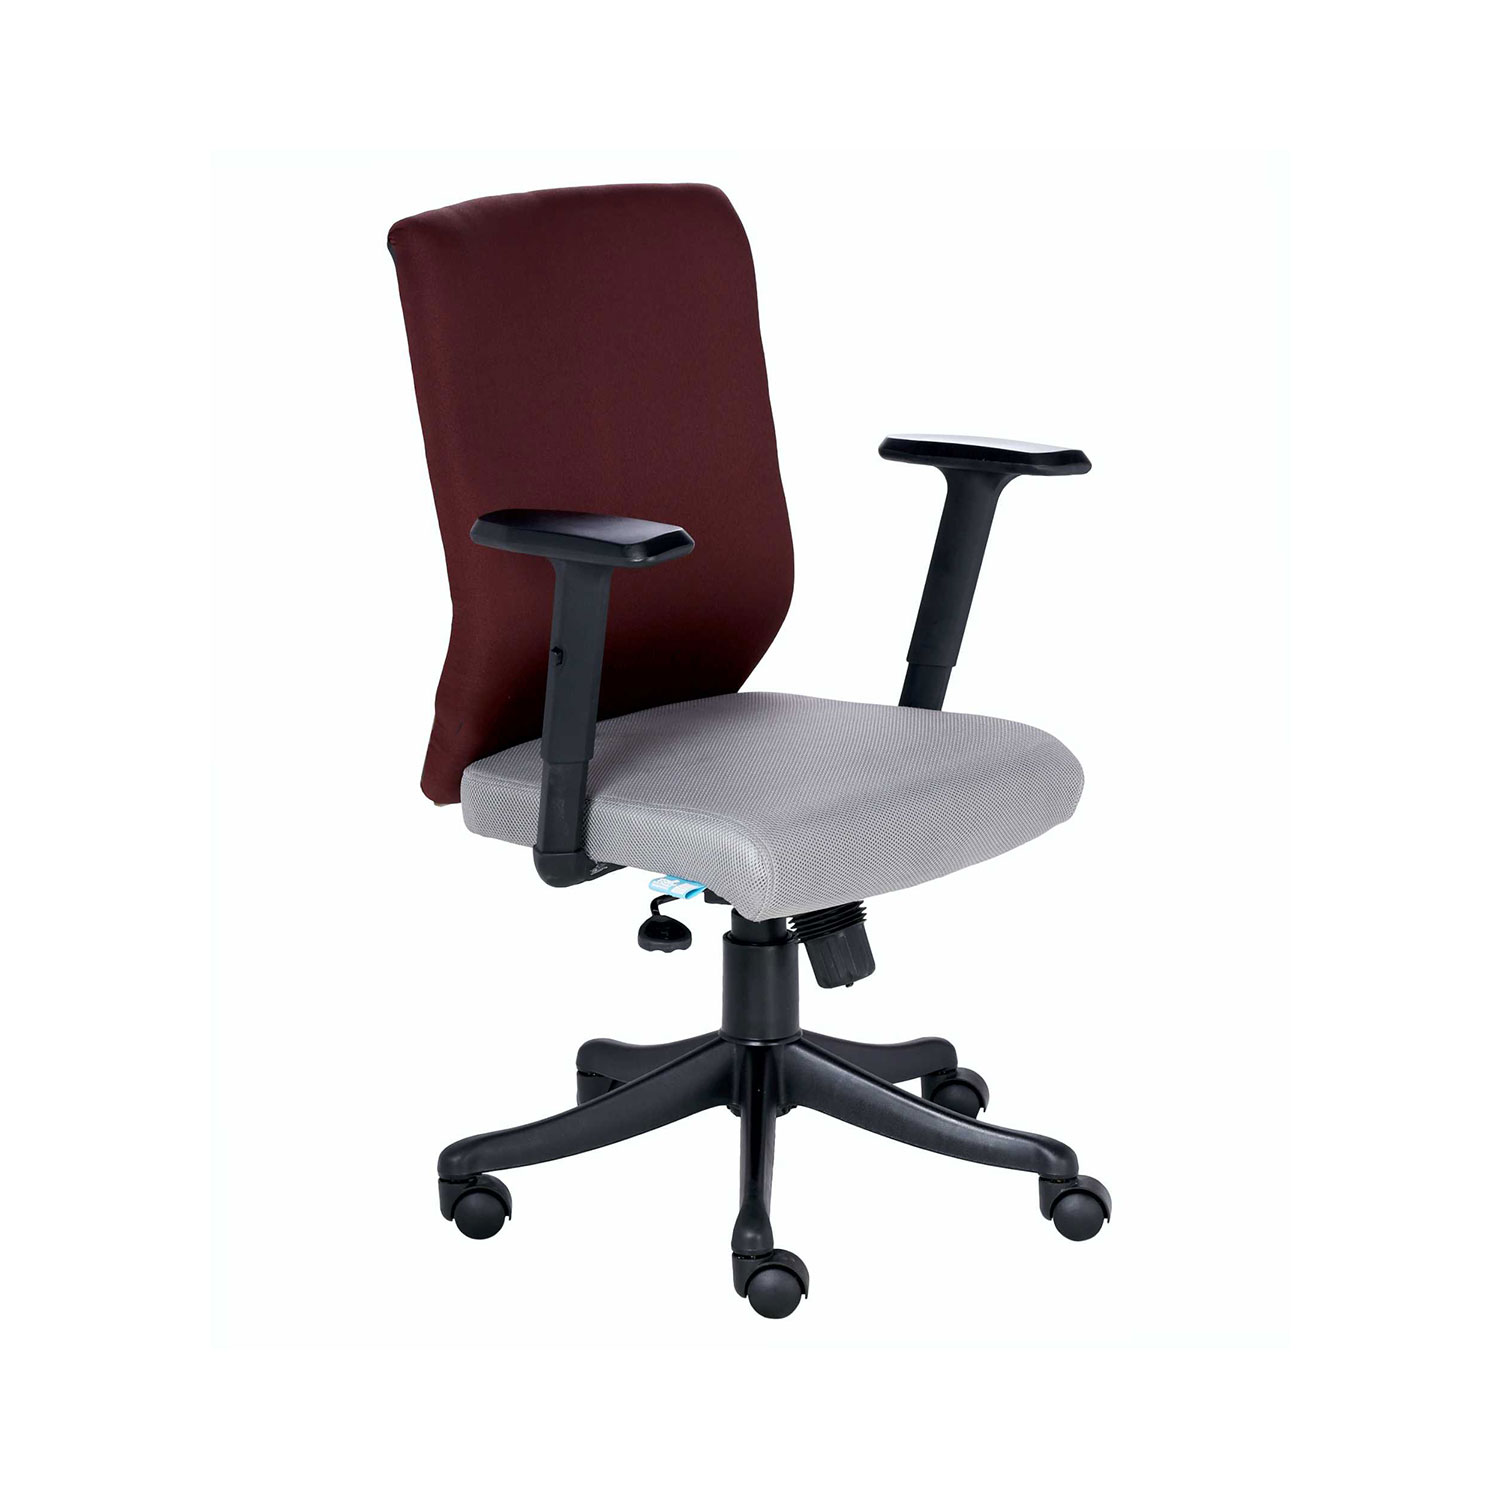 maroon office chairs vinyl mesh fabric for sling the nogris medium back chair in grey and color vj